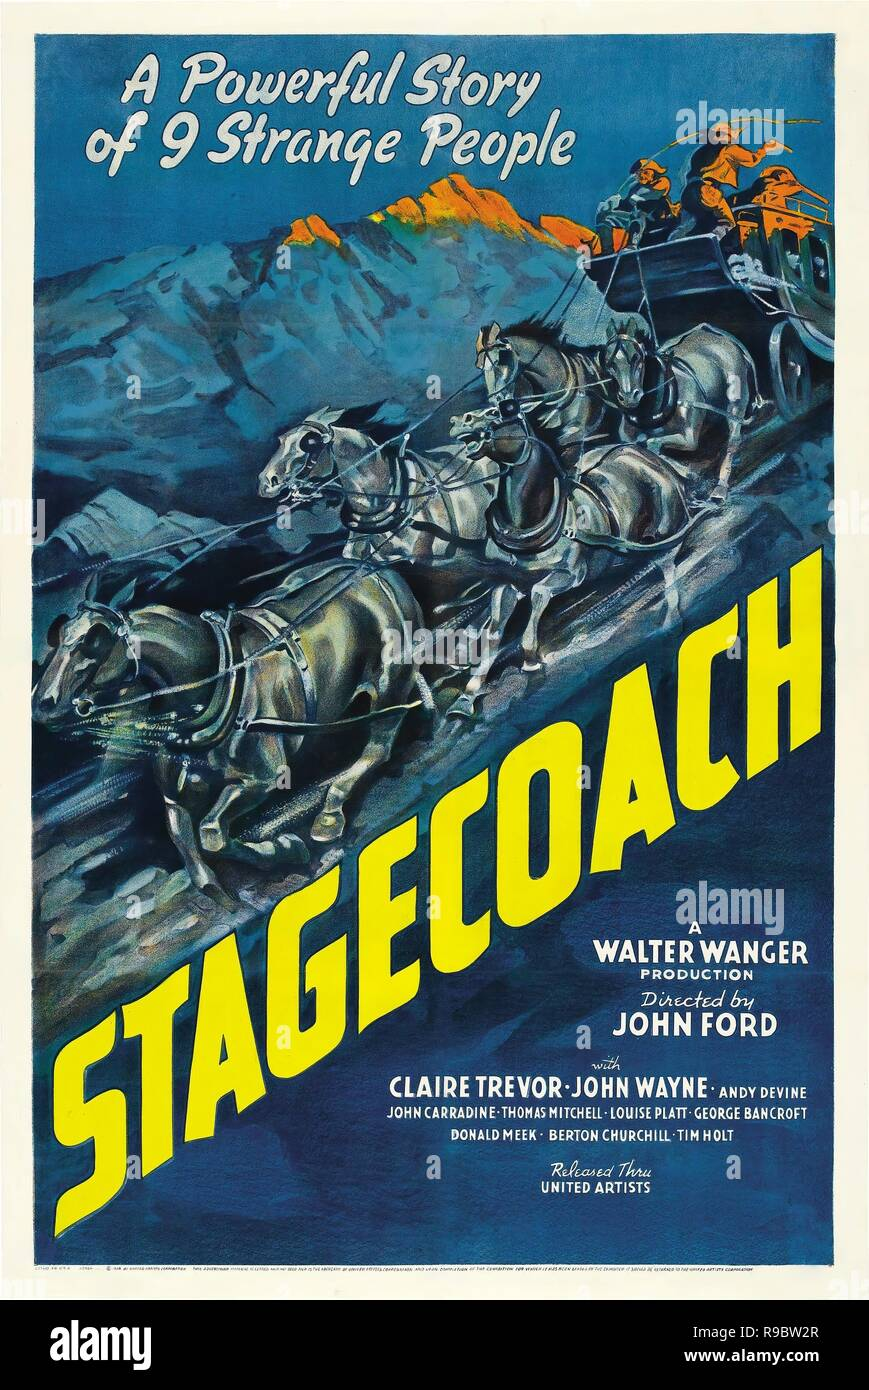 Original film title: STAGECOACH. English title: STAGECOACH. Year: 1939. Director: JOHN FORD. Credit: UNITED ARTISTS / Album Stock Photo